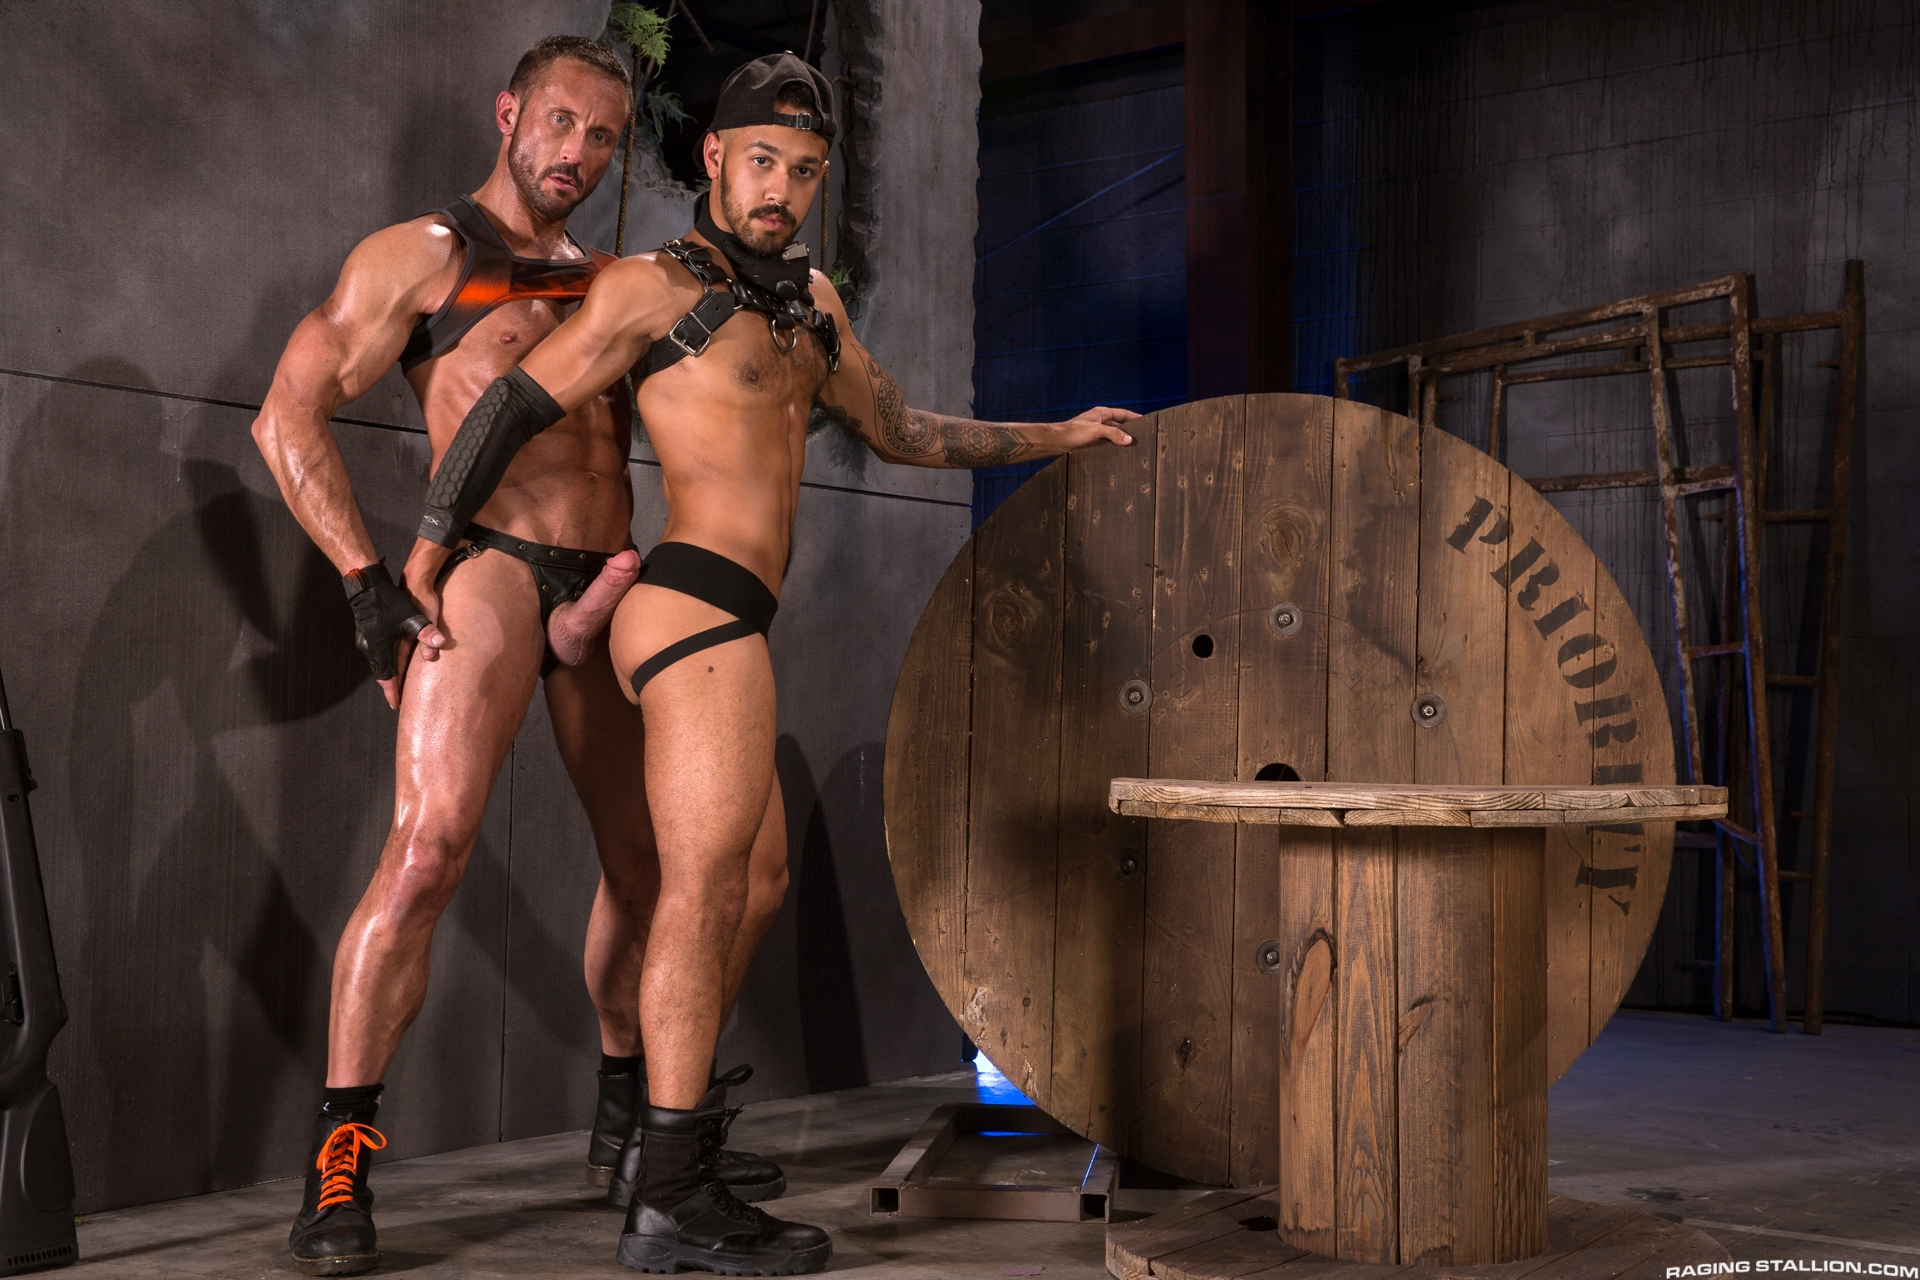 Leather Men: Myles Landon and Talon Reed – Pictures